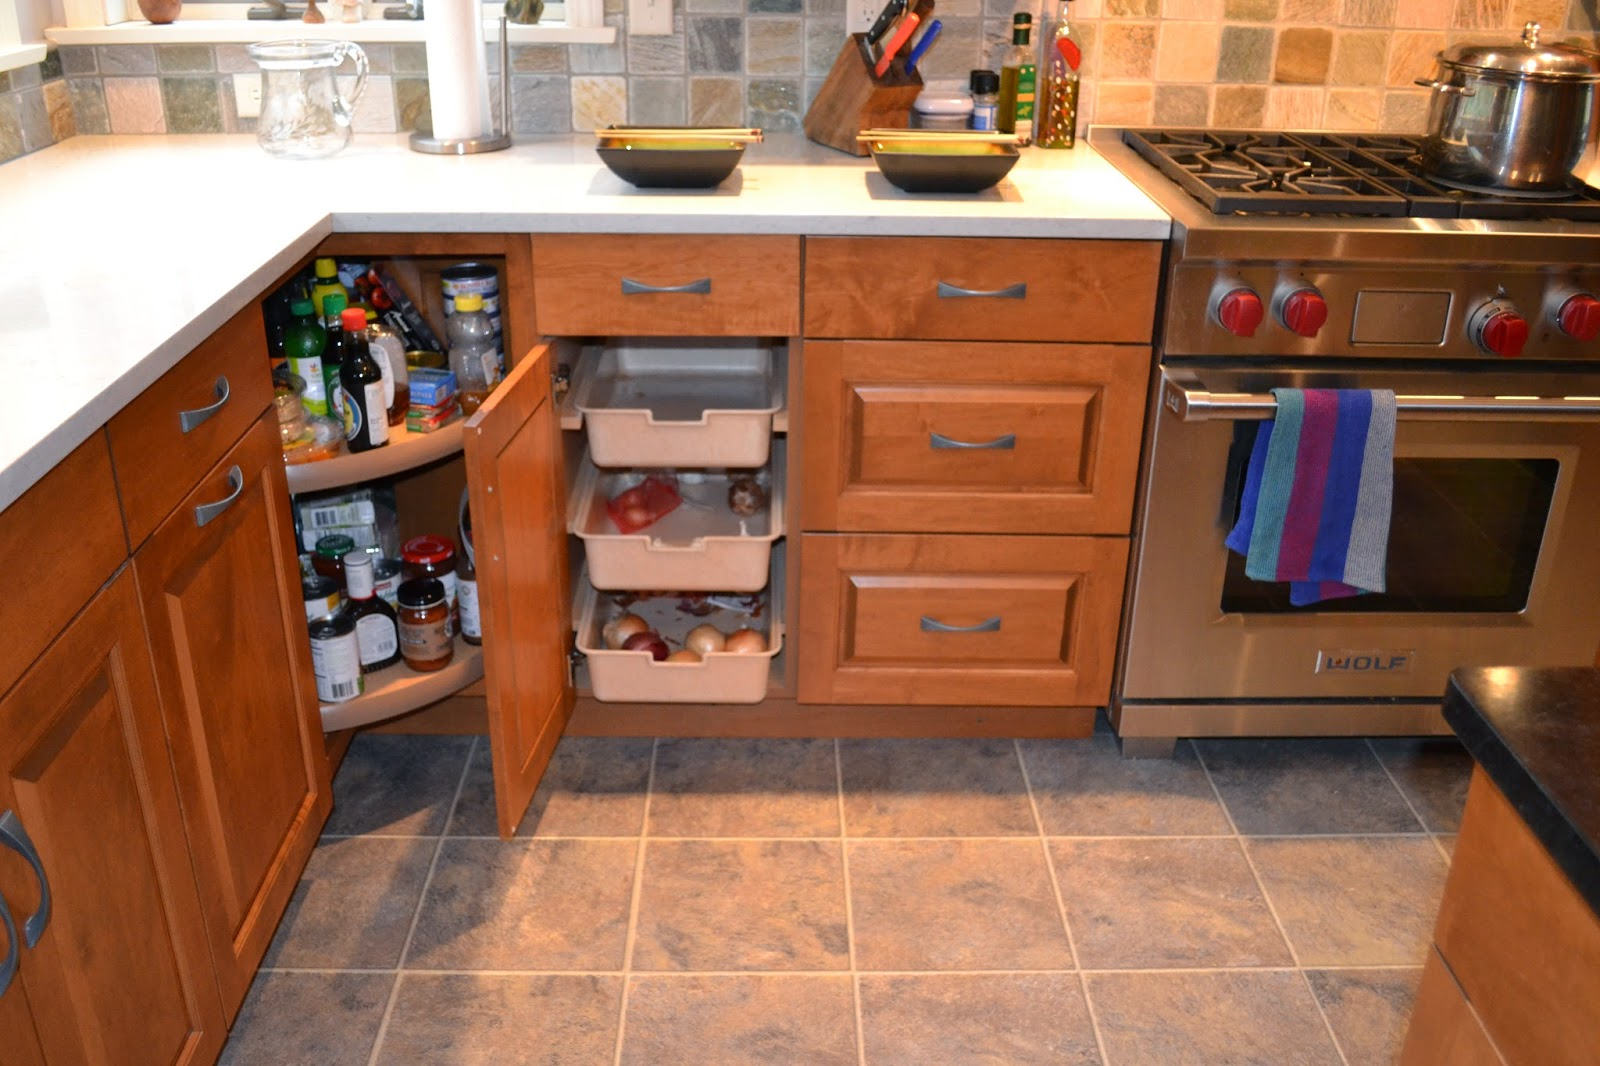 & Kitchen u0026 Bathroom Remodeling Tips You Will Love